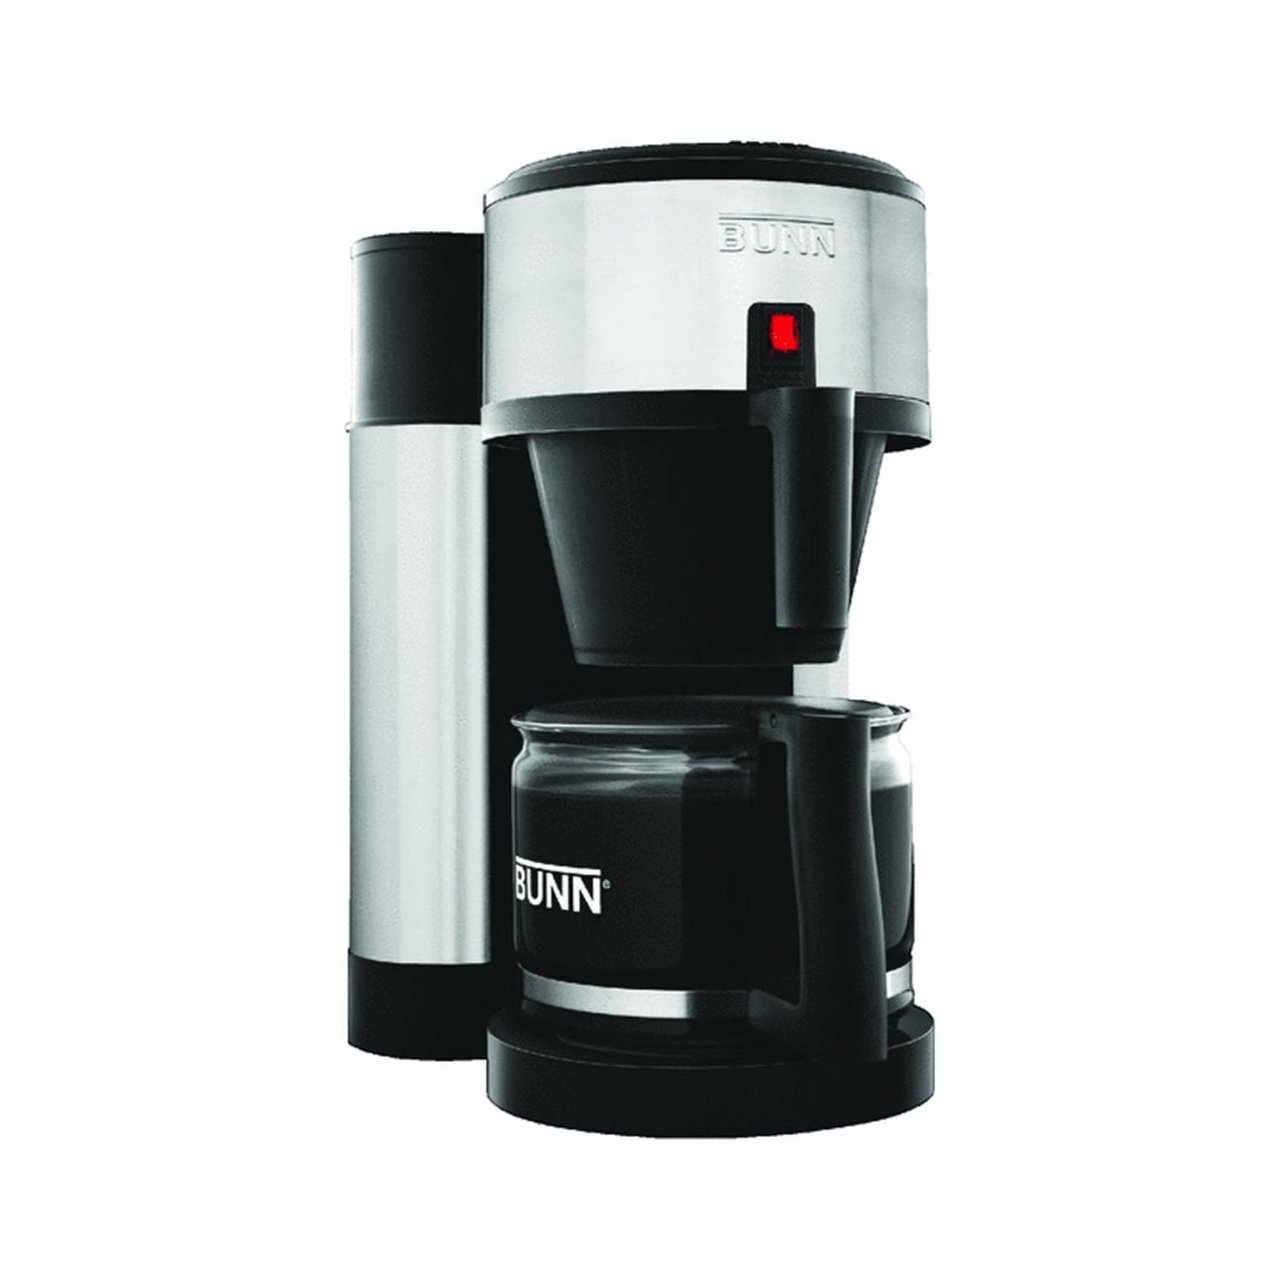 Bunn Nhs Velocity Brew 10 Cup Home Coffee Brewer Drip Bxb Wiring Diagram Coffeemakers Kitchen Dining